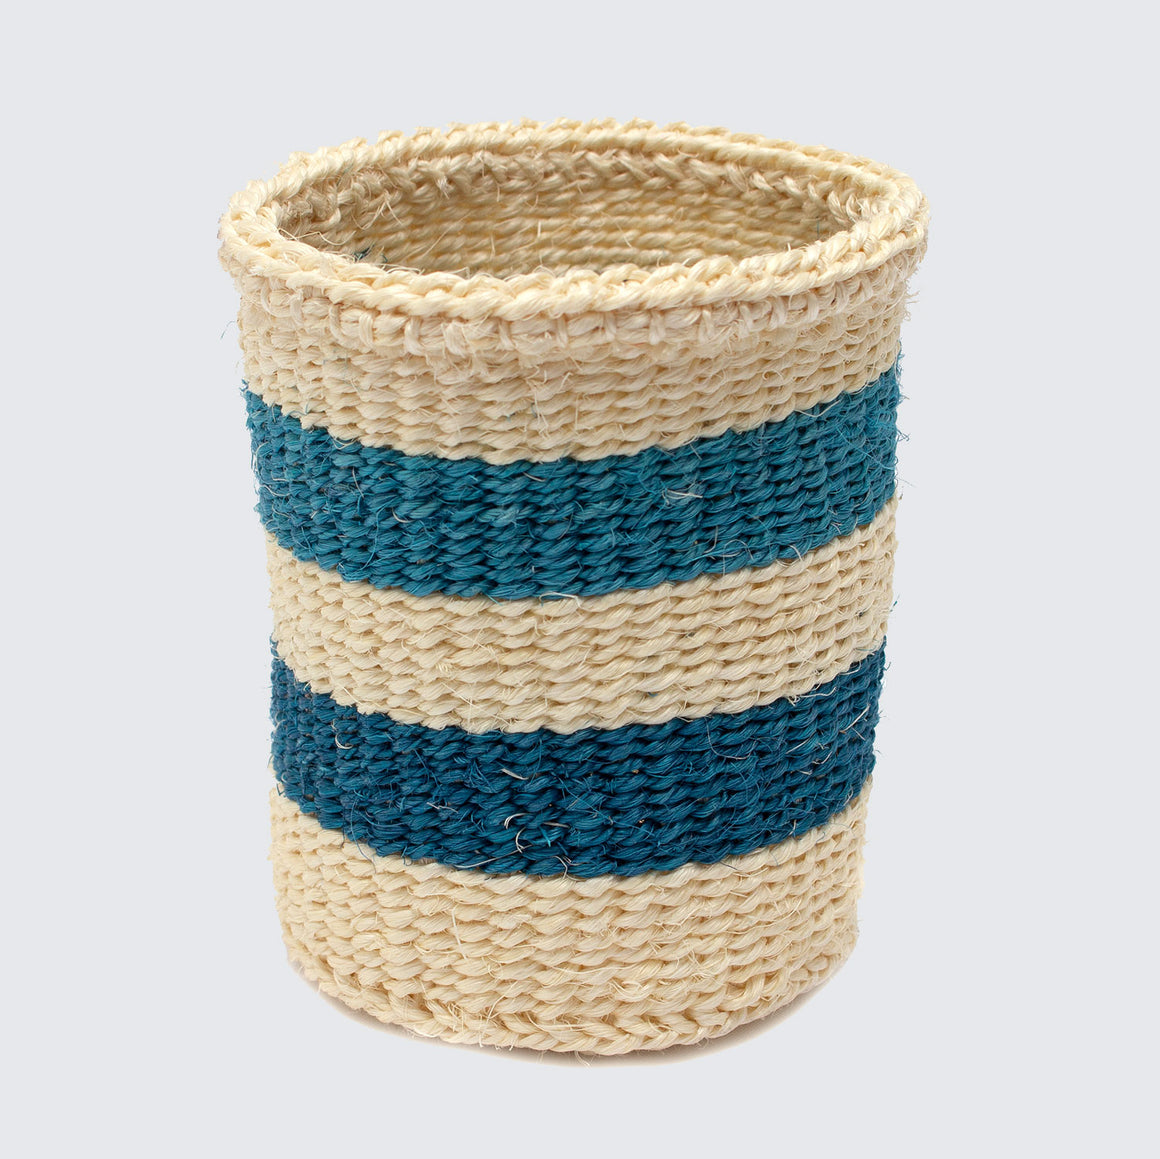 Kenyan Woven Basket 'Small Blue & Natural Stripes'